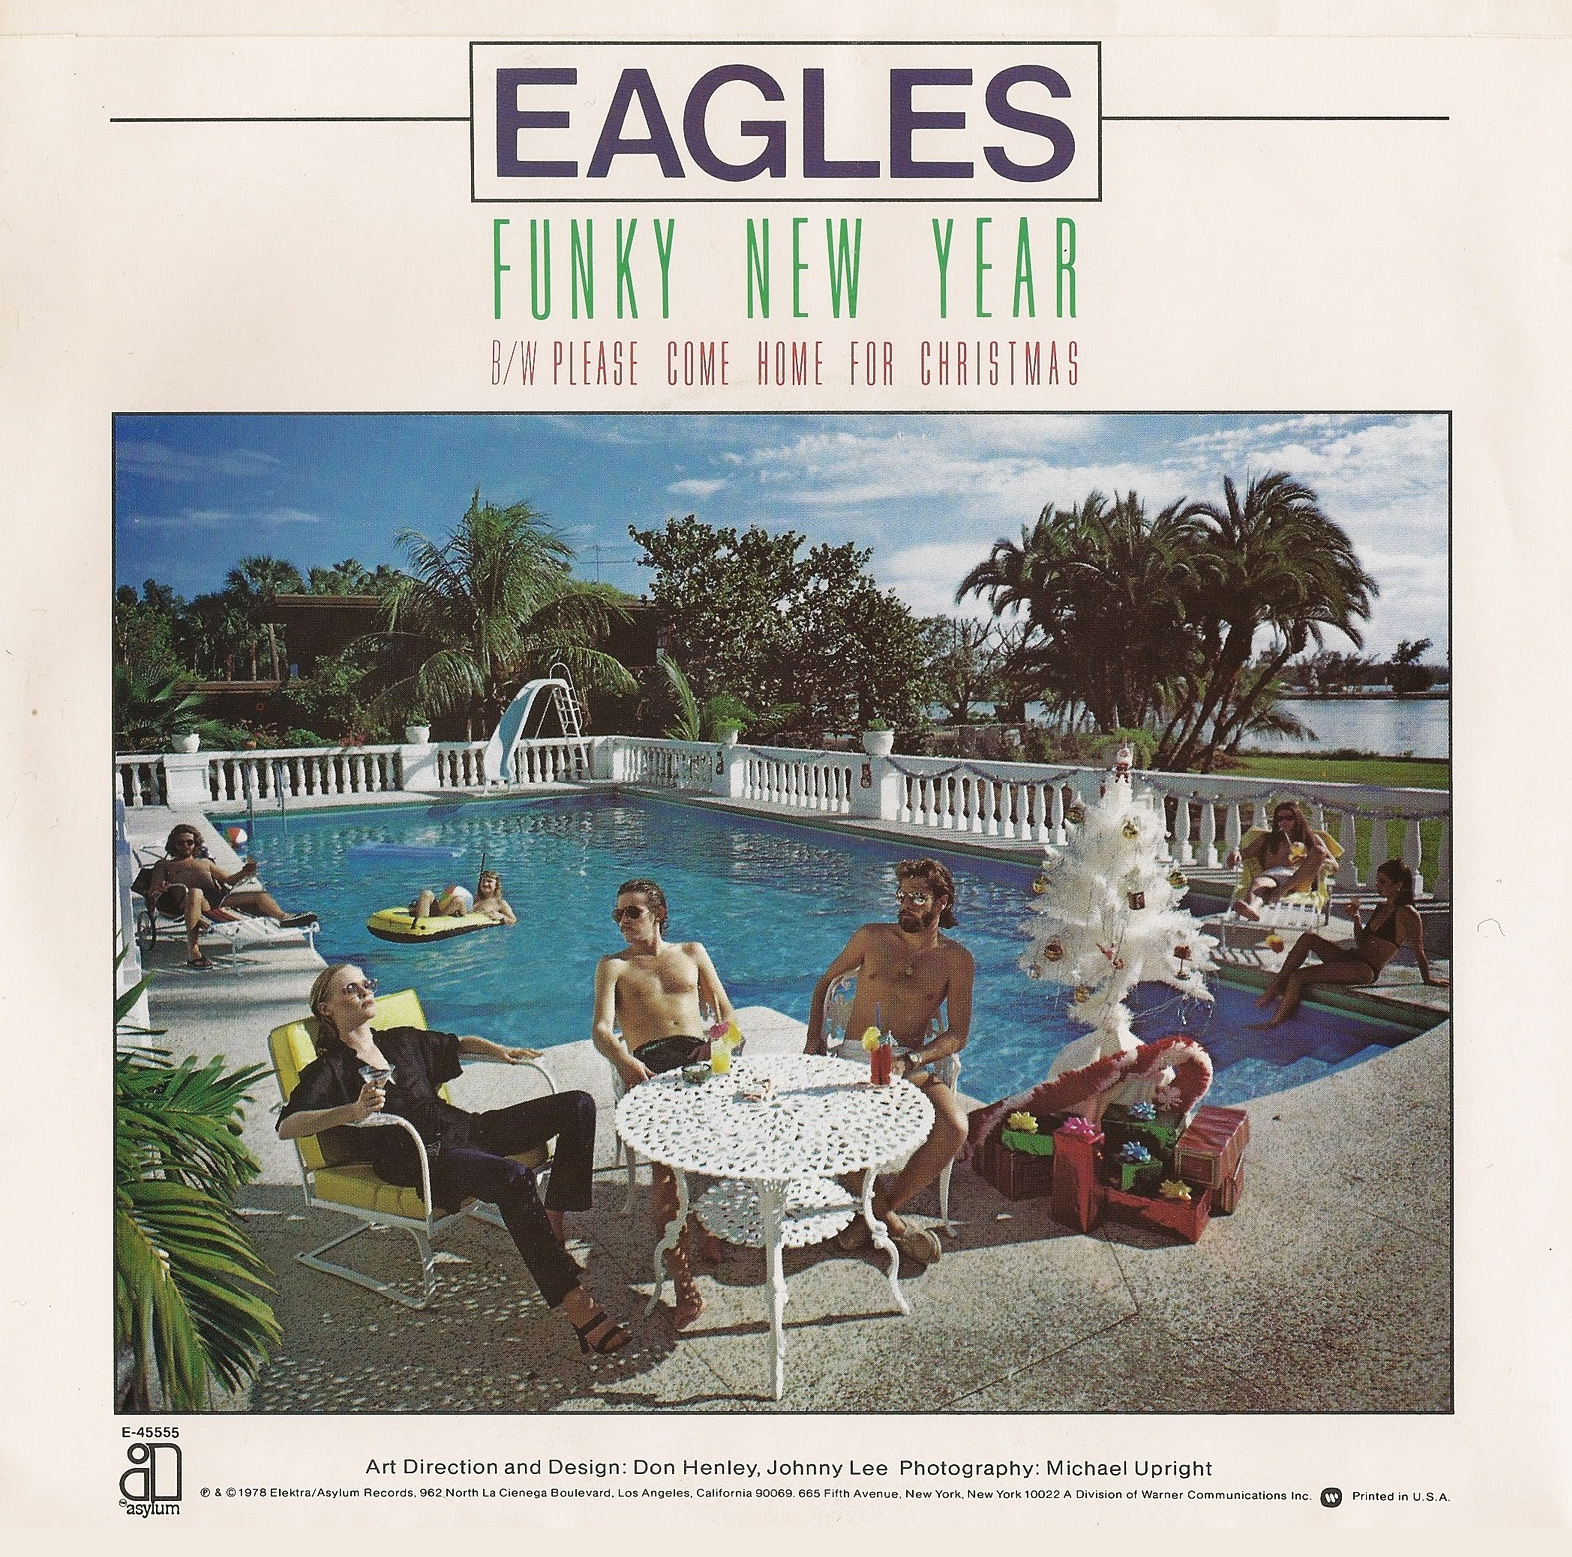 Don Henly Christmas.Please Come Home For Christmas Funky New Year Eagles